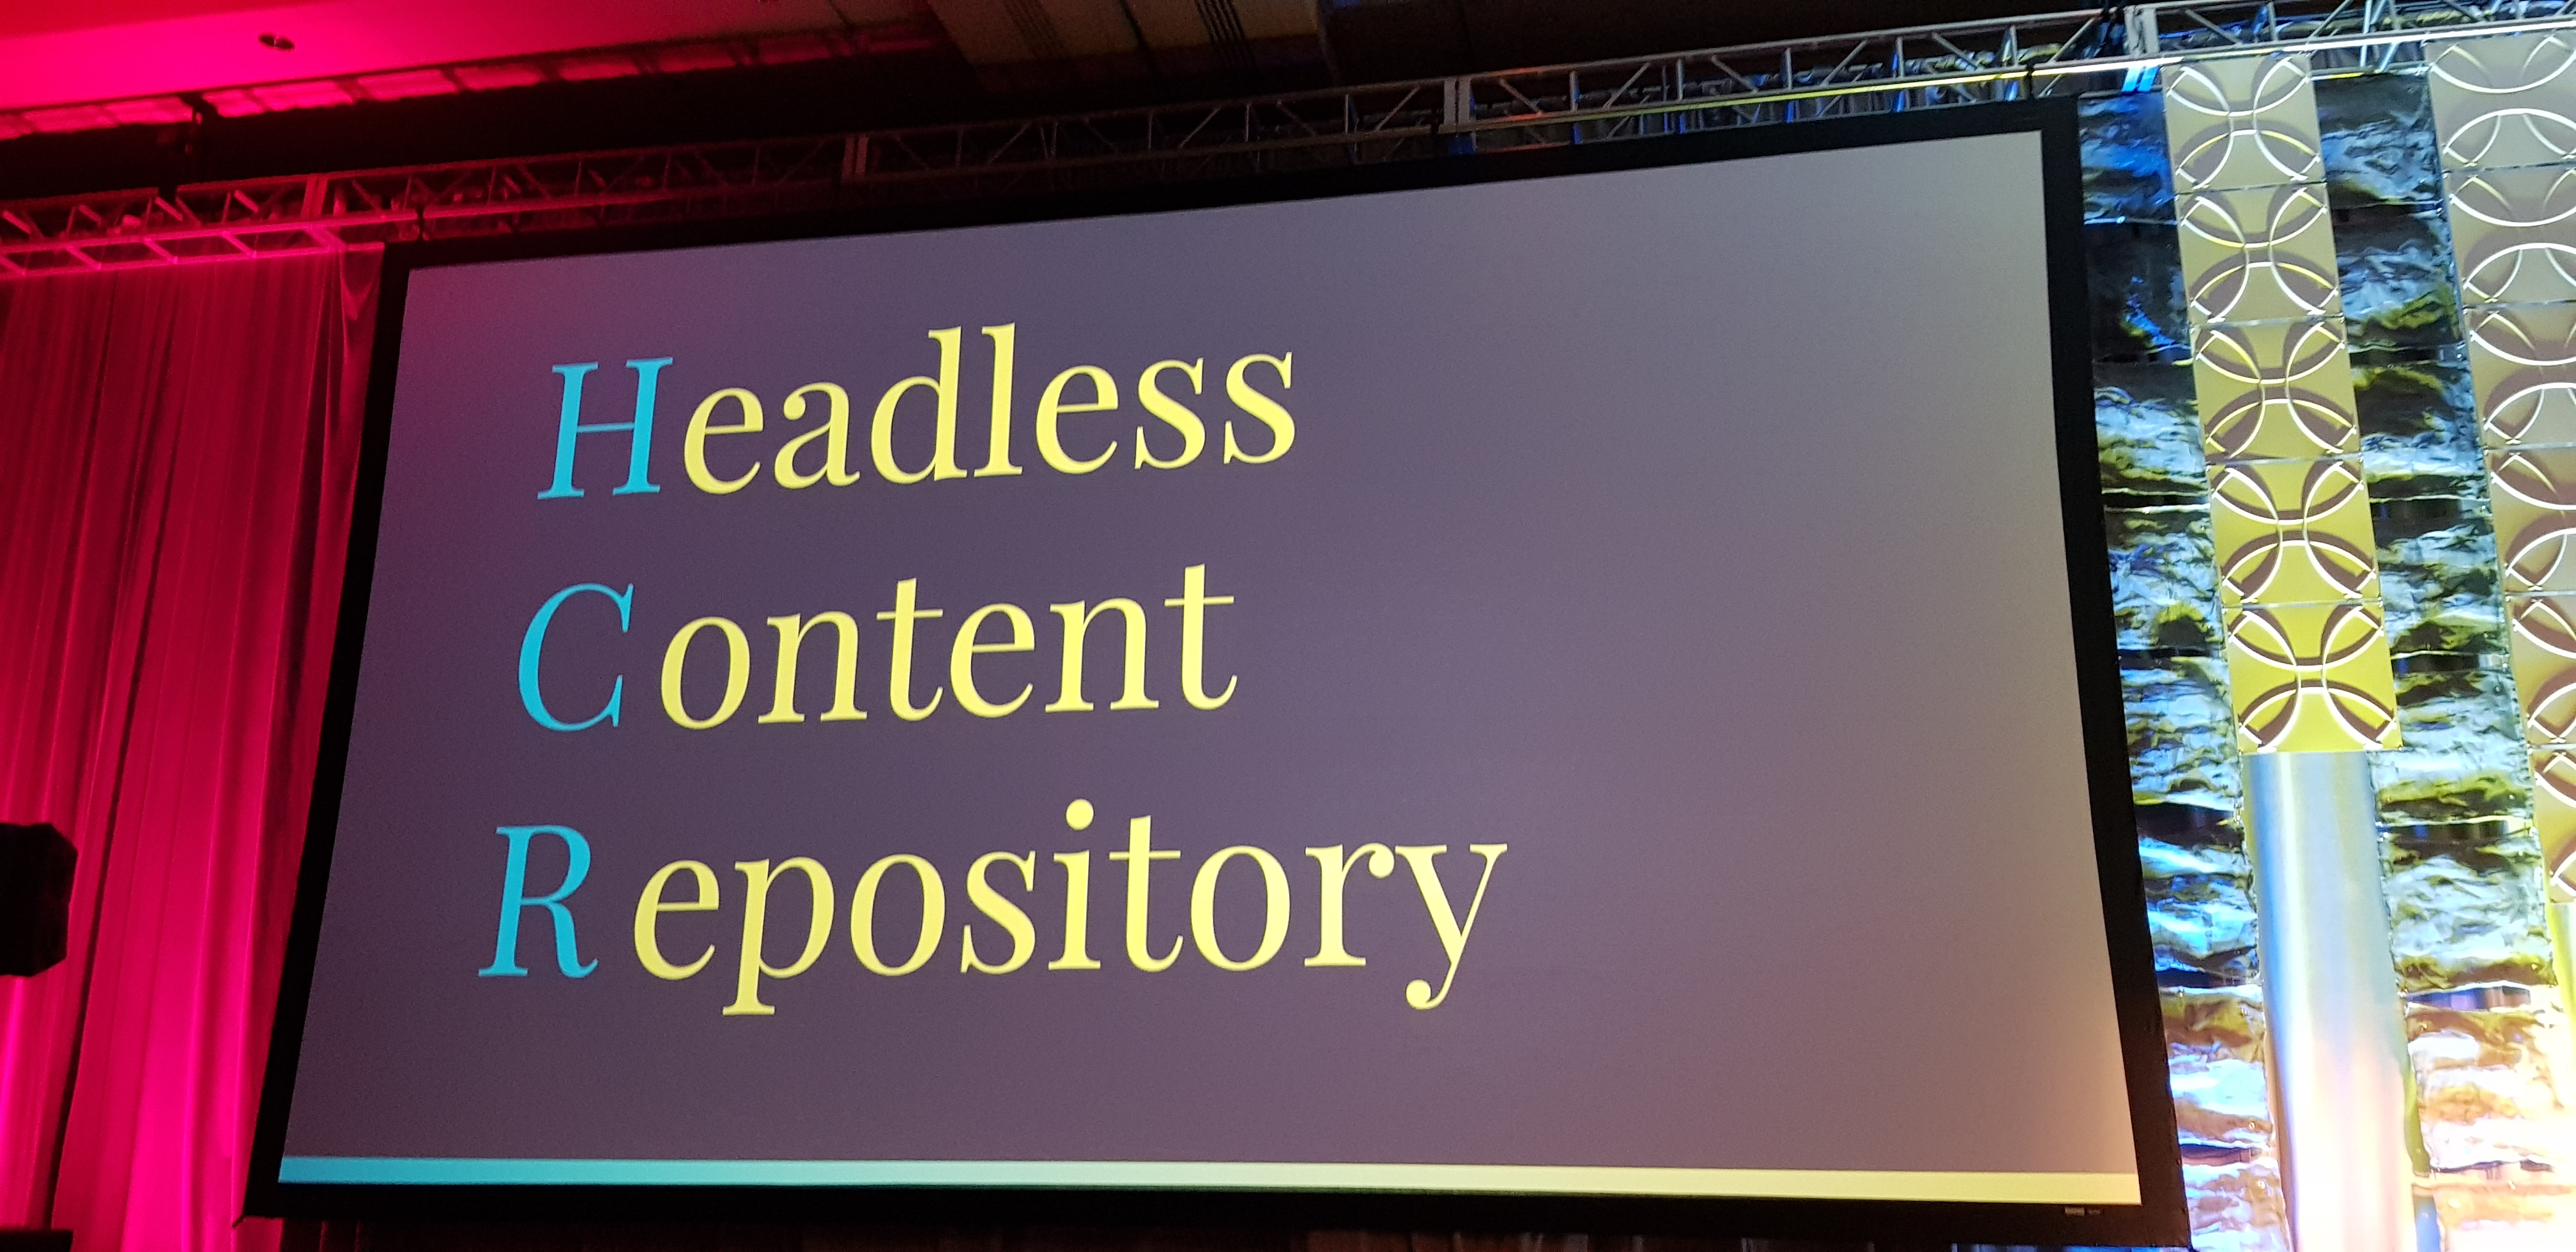 Headless Content Repository